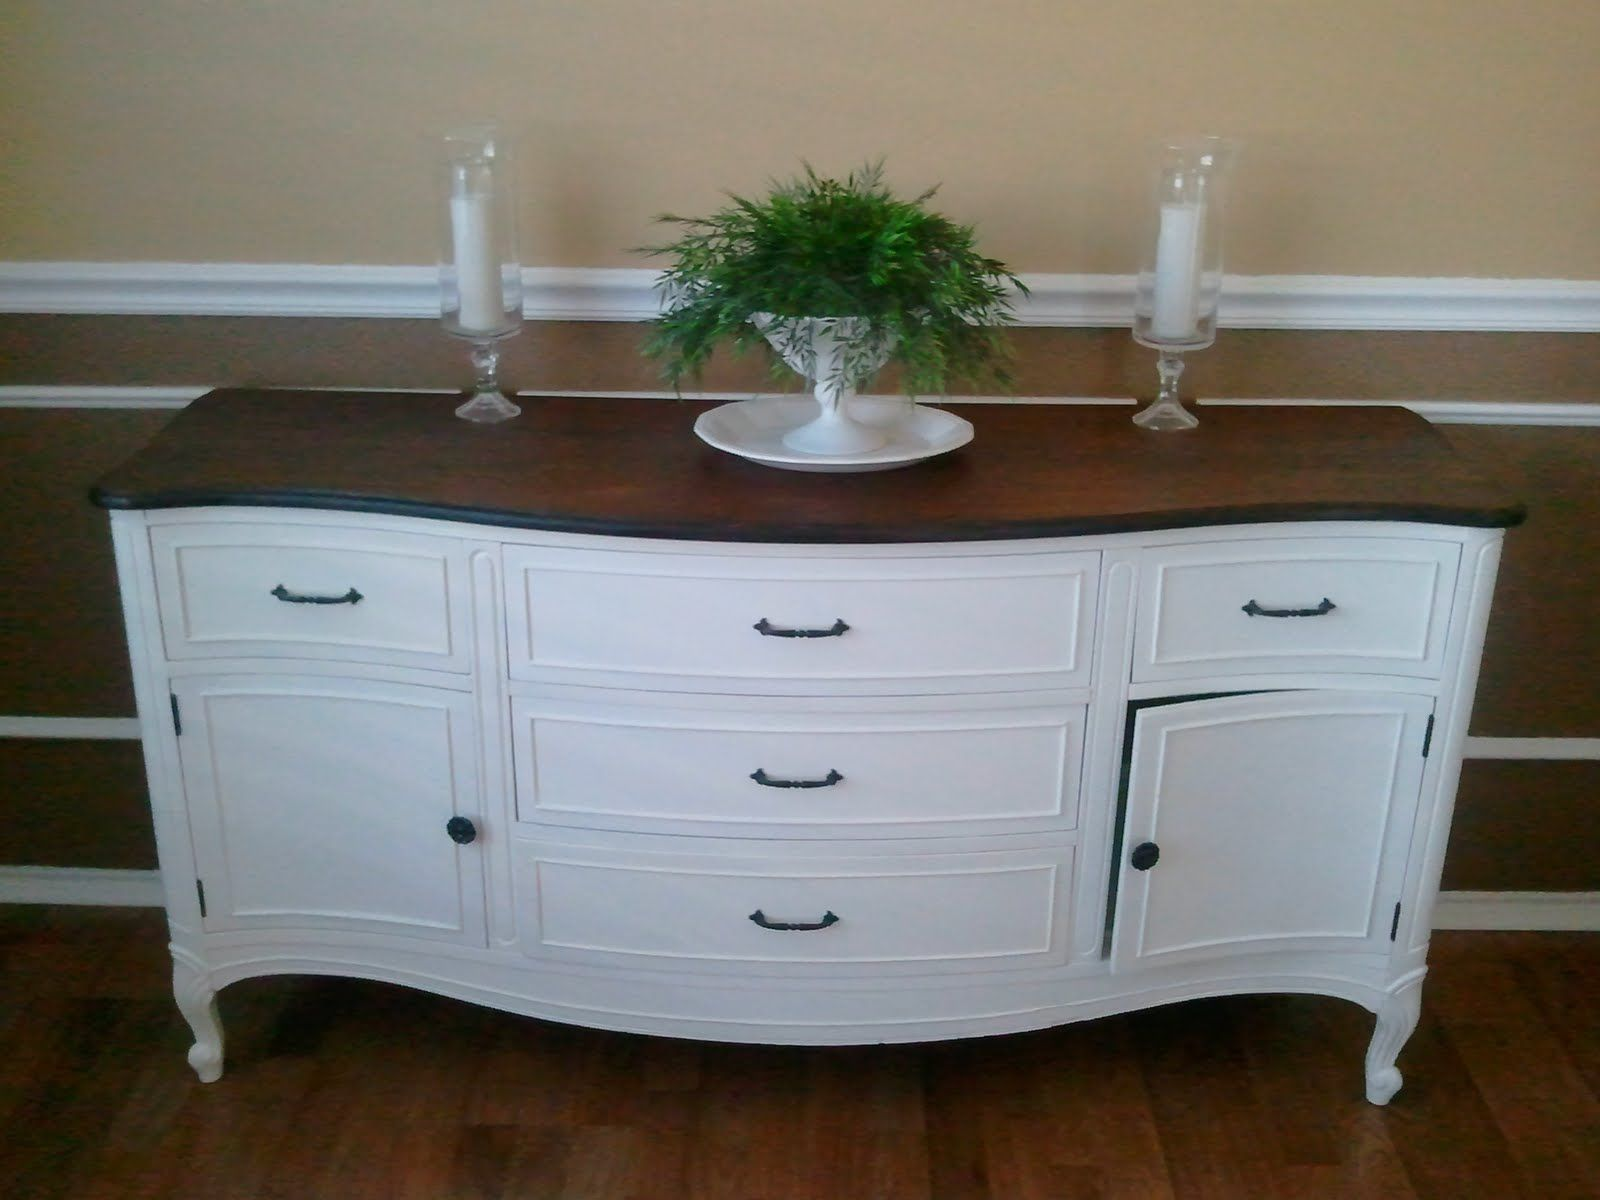 sideboard painted white | Home ideas | Pinterest | Credenza ...